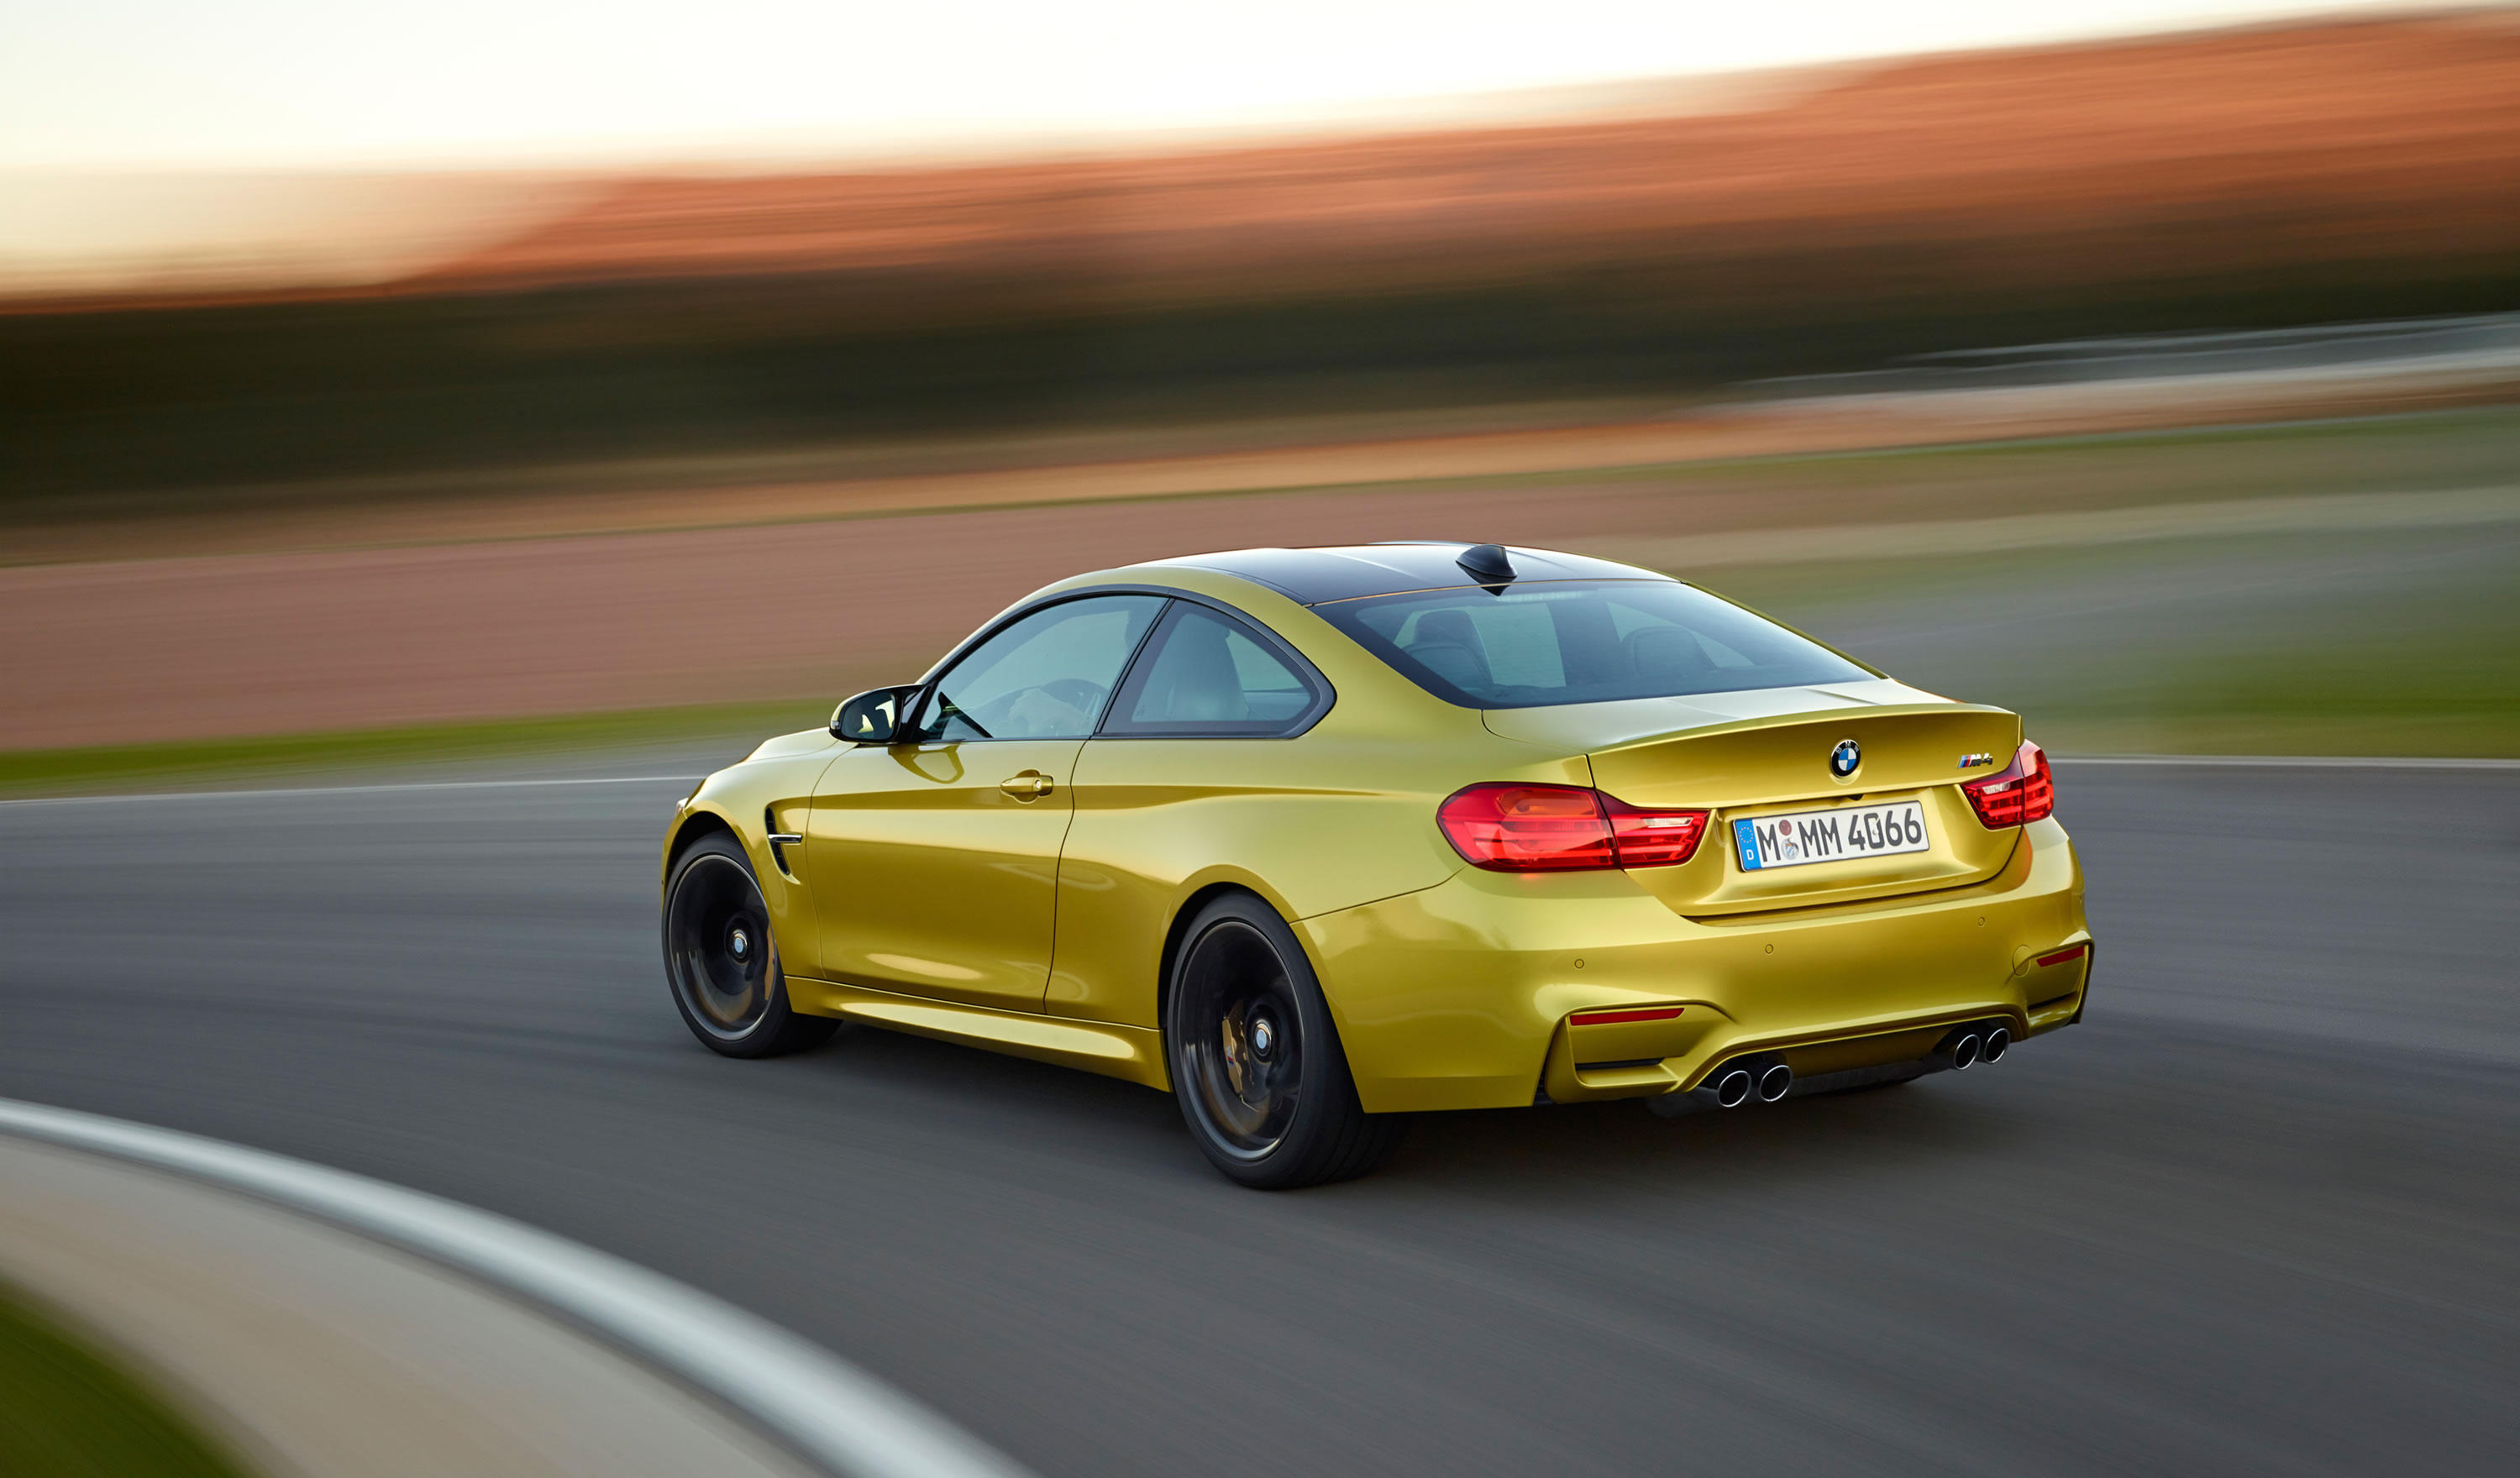 2015 BMW M4 Coupe Photos, Specs and Review - RS